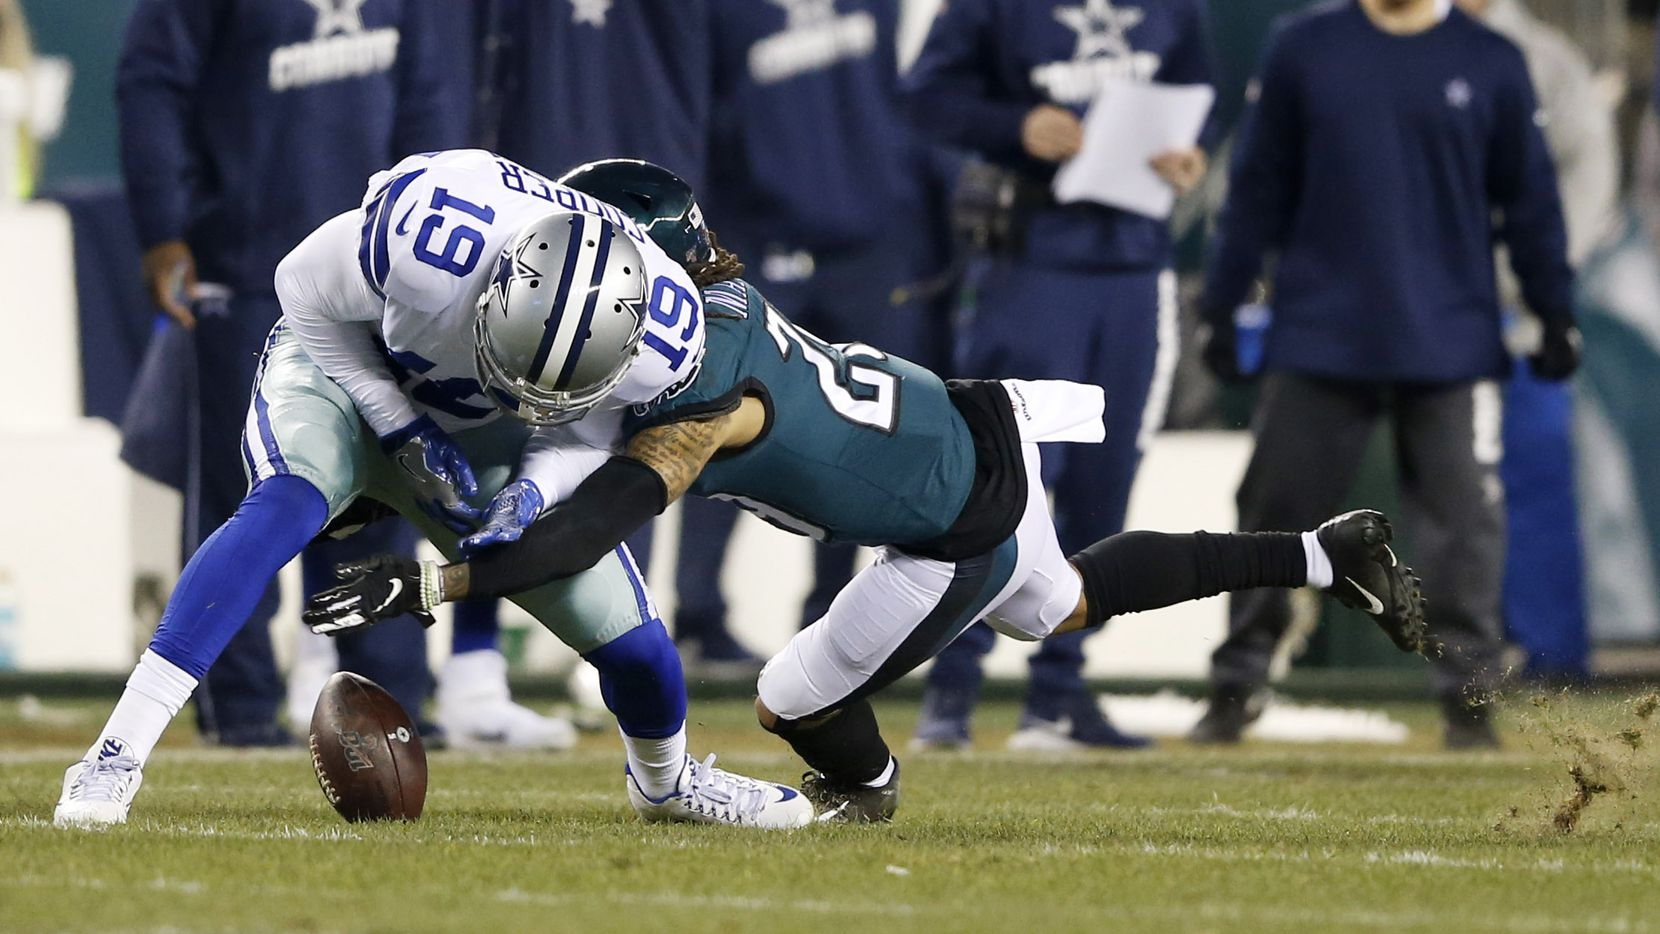 Dallas Cowboys wide receiver Amari Cooper (19) drops a pass on third down as Philadelphia Eagles cornerback Avonte Maddox (29) defends during the first half of play at Lincoln Financial Field in Philadelphia on Sunday, December 22, 2019.